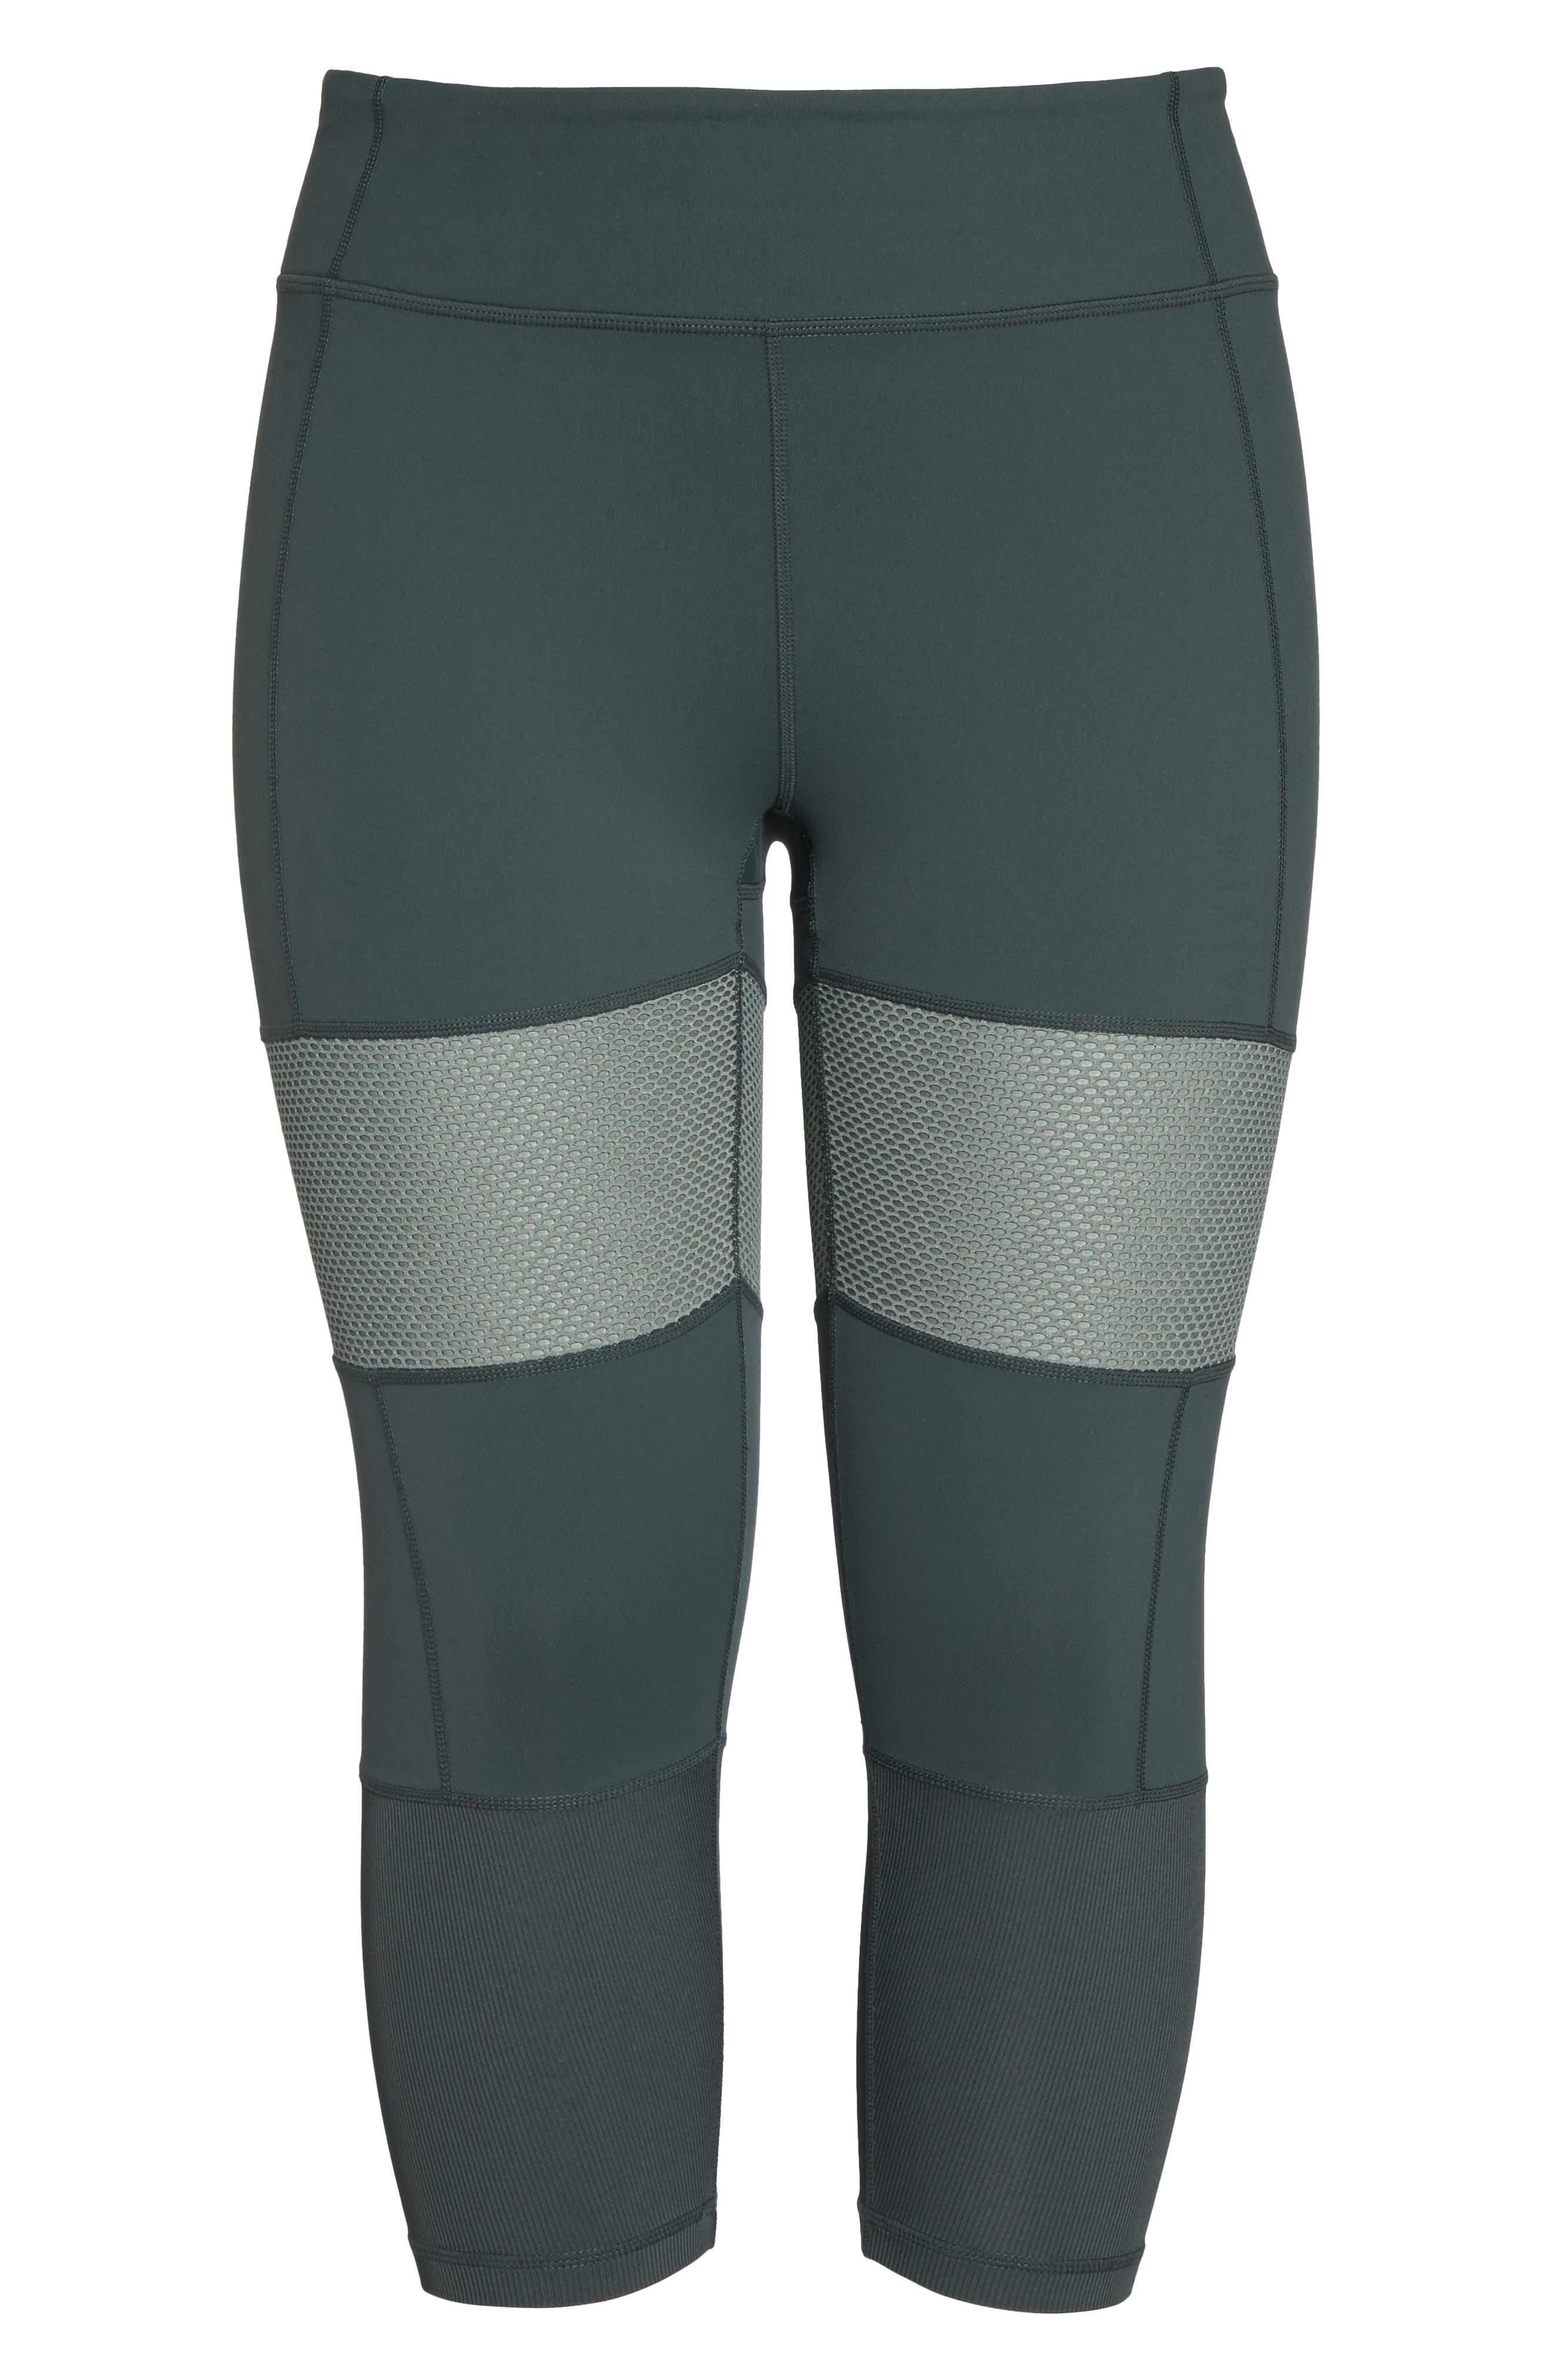 Blissed Out Crop Leggings,                             Alternate thumbnail 6, color,                             021